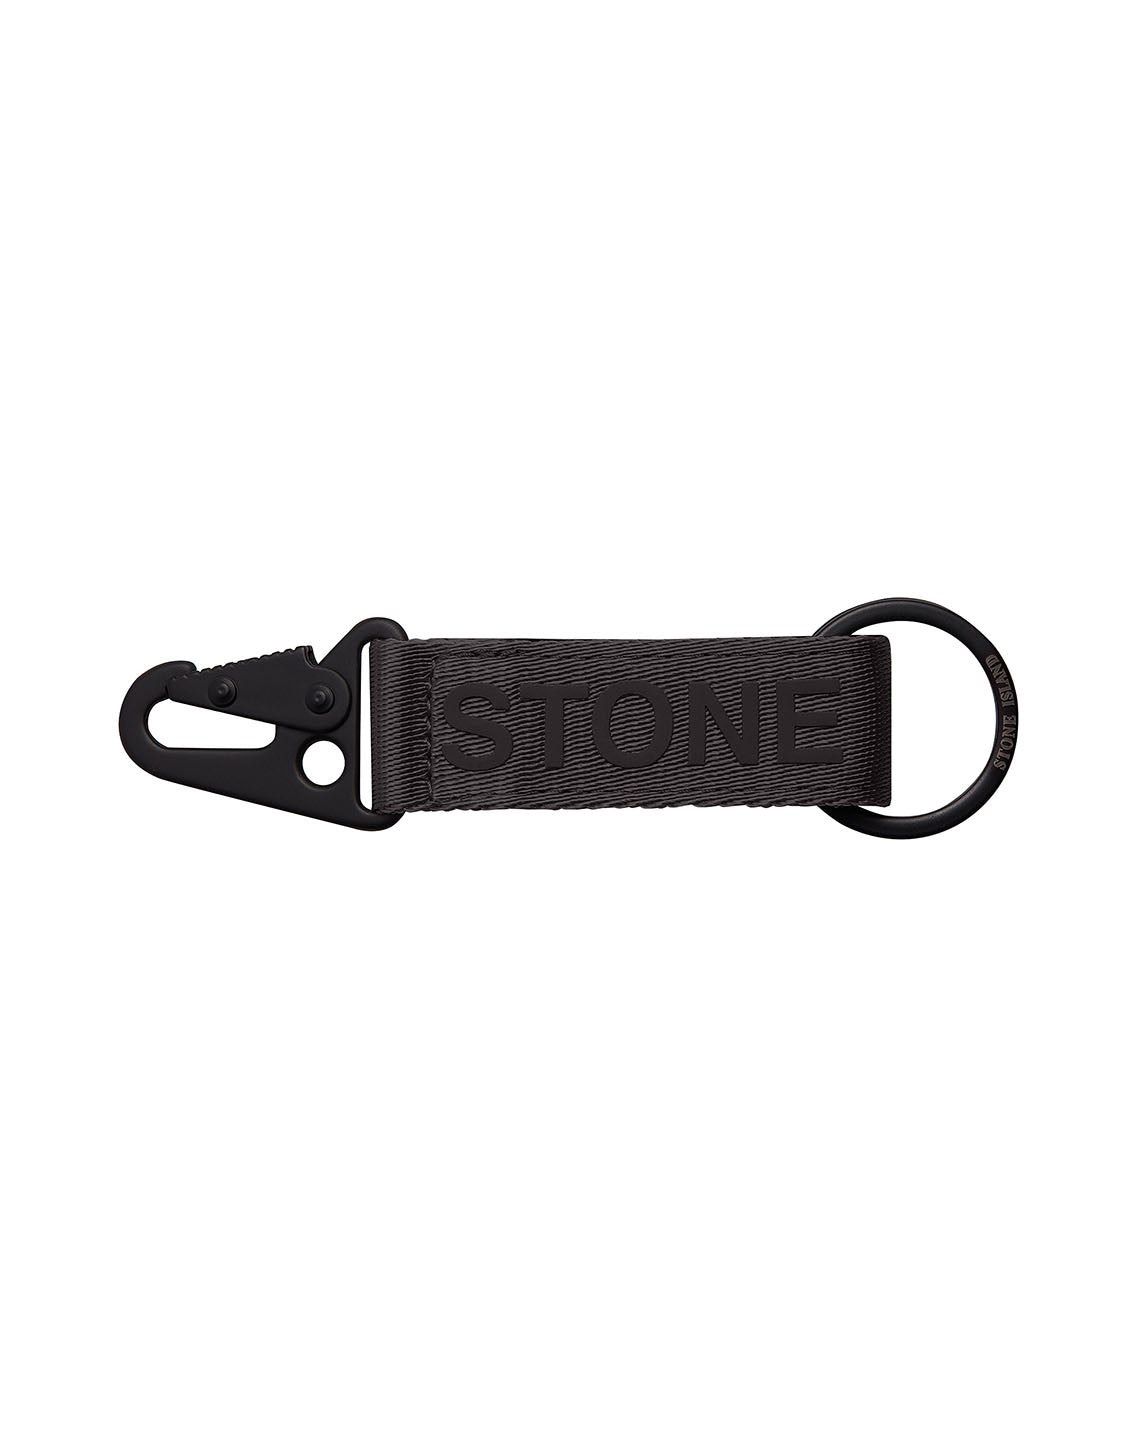 95064 Keyring in Black